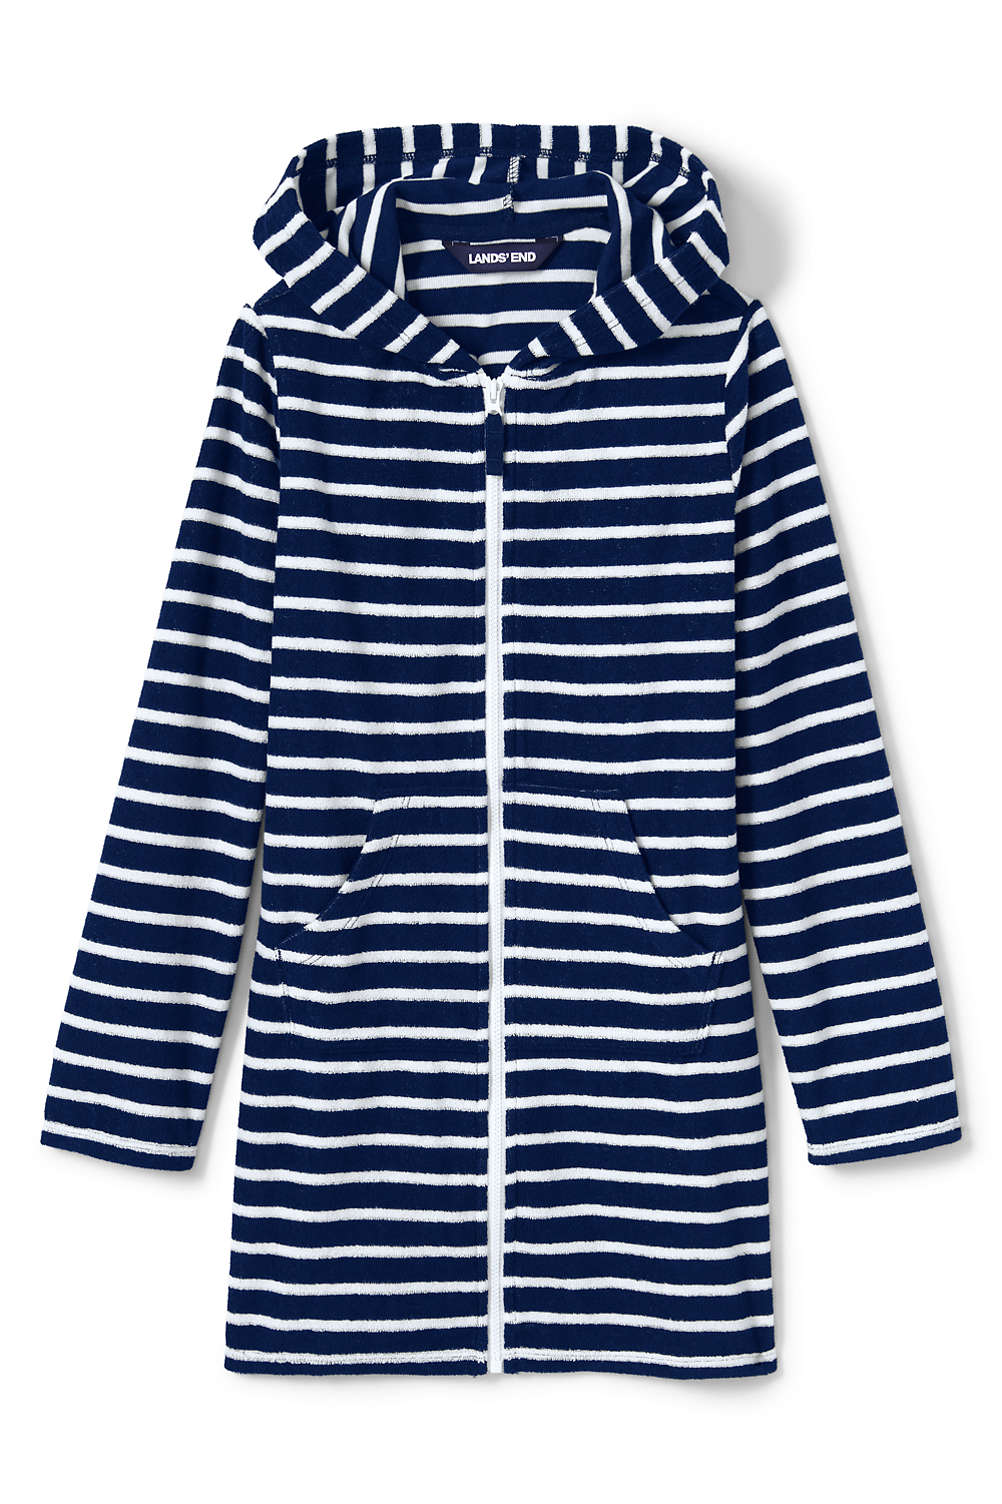 fdbceede937b2 Girls Stripe Kangaroo Pocket Swim Cover-Up from Lands' End